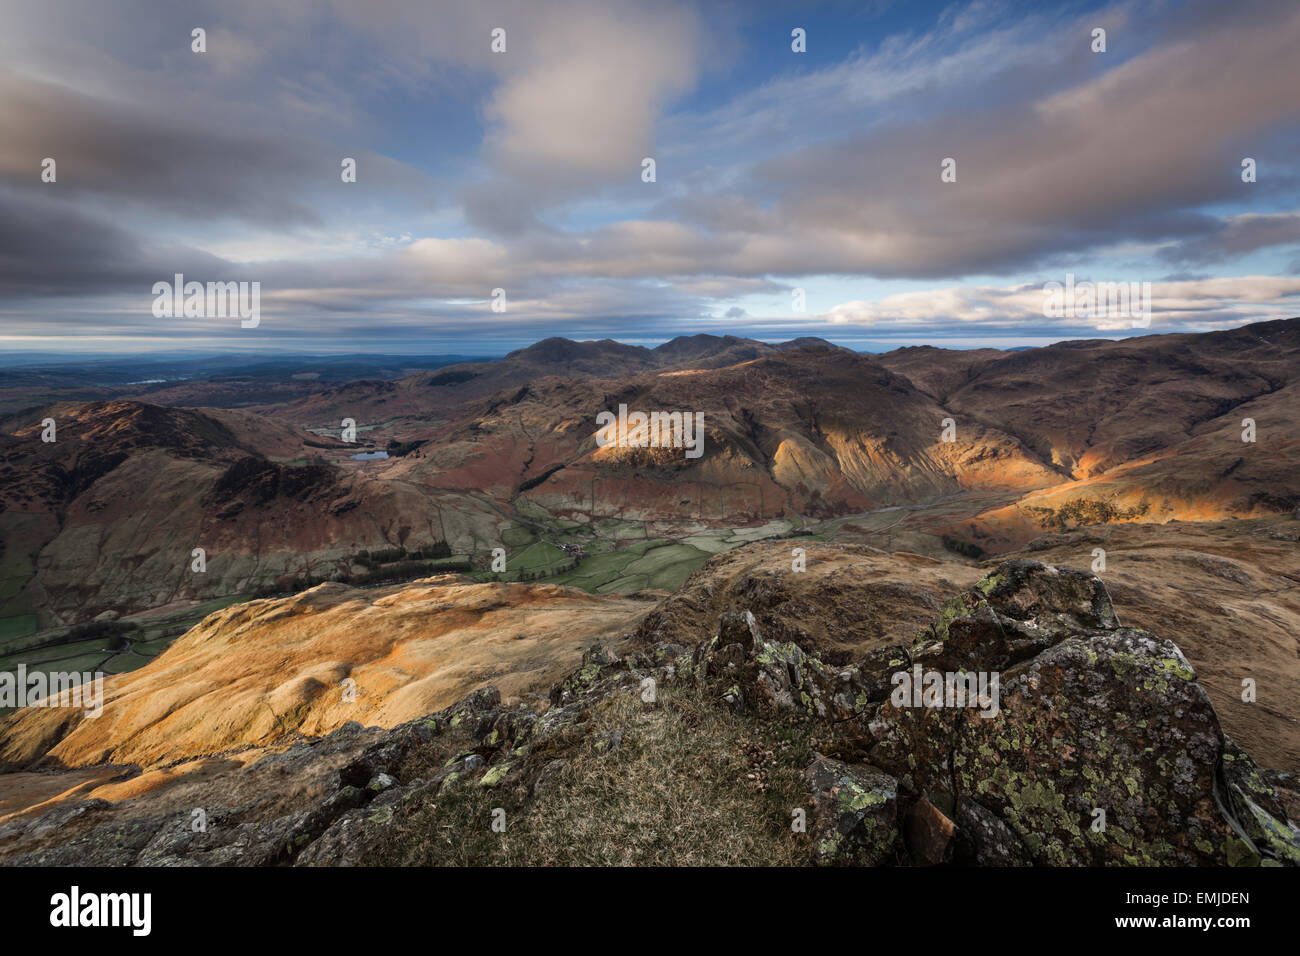 The first light of dawn sunrise catching the fells of Great Langdale in the English Lake District - Stock Image